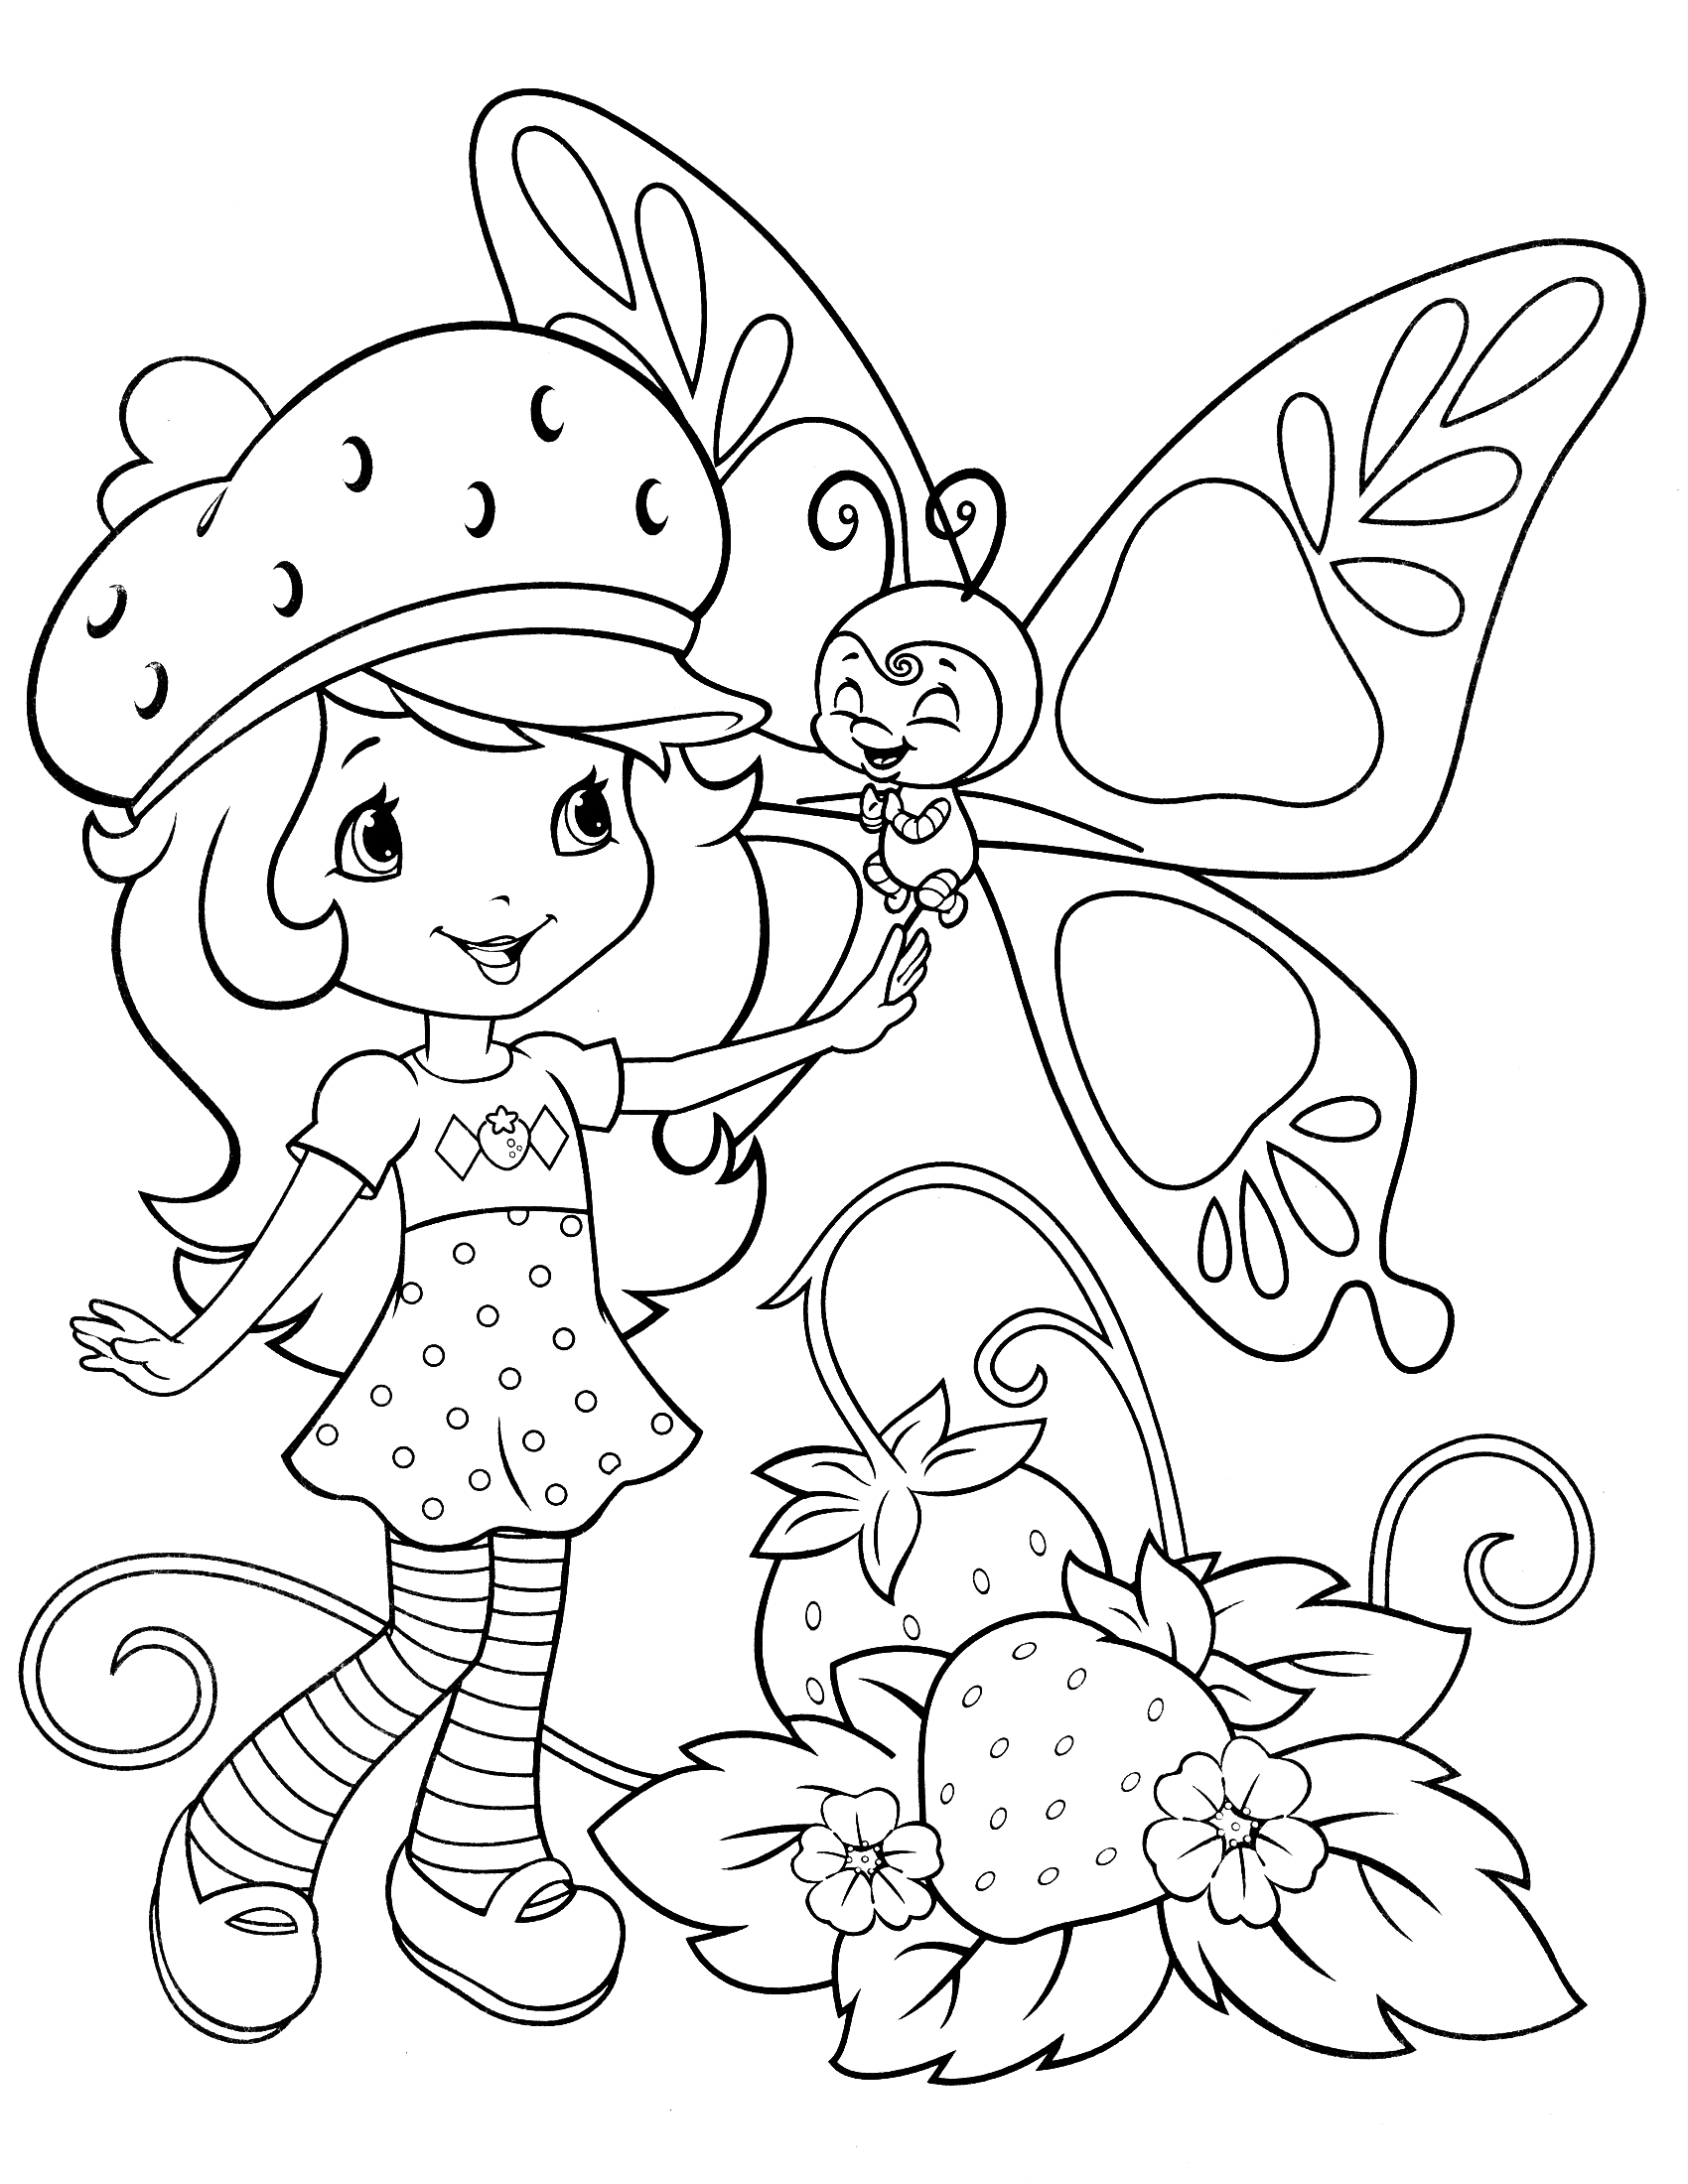 Printable Strawberry Shortcake Coloring Pages Coloring Me Printable Pages